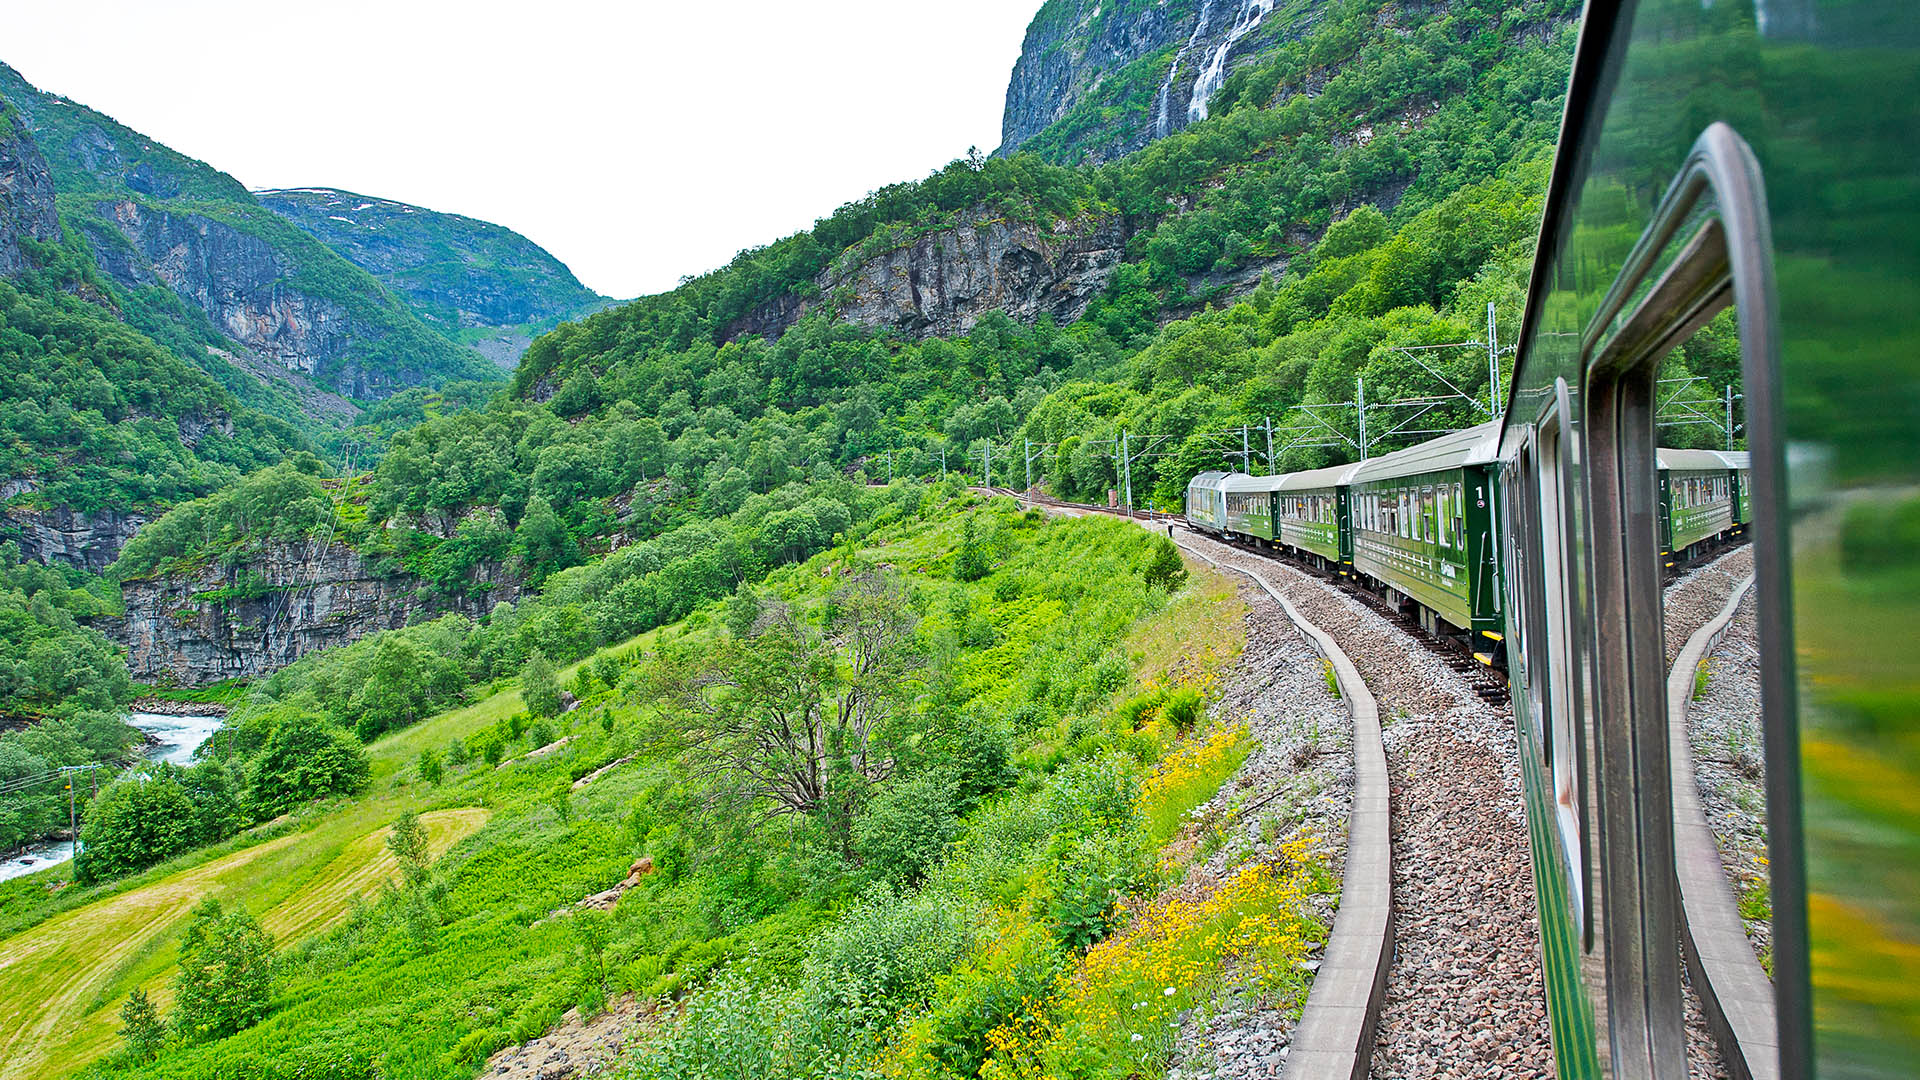 The iconic Flåm railway